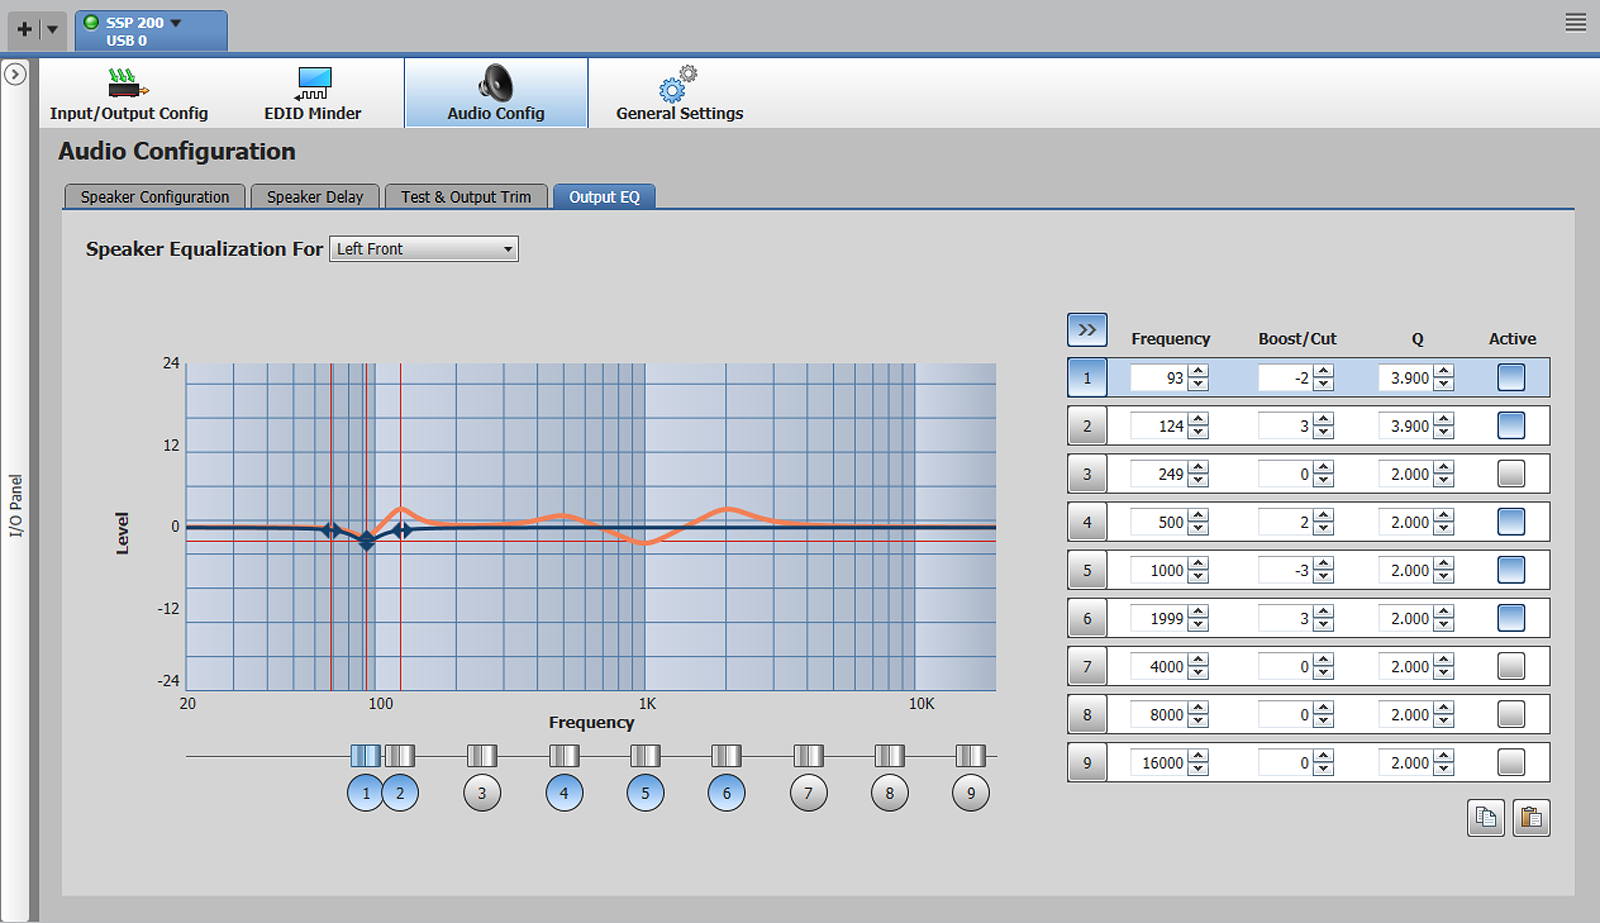 Nine band parametric EQ per speaker channel